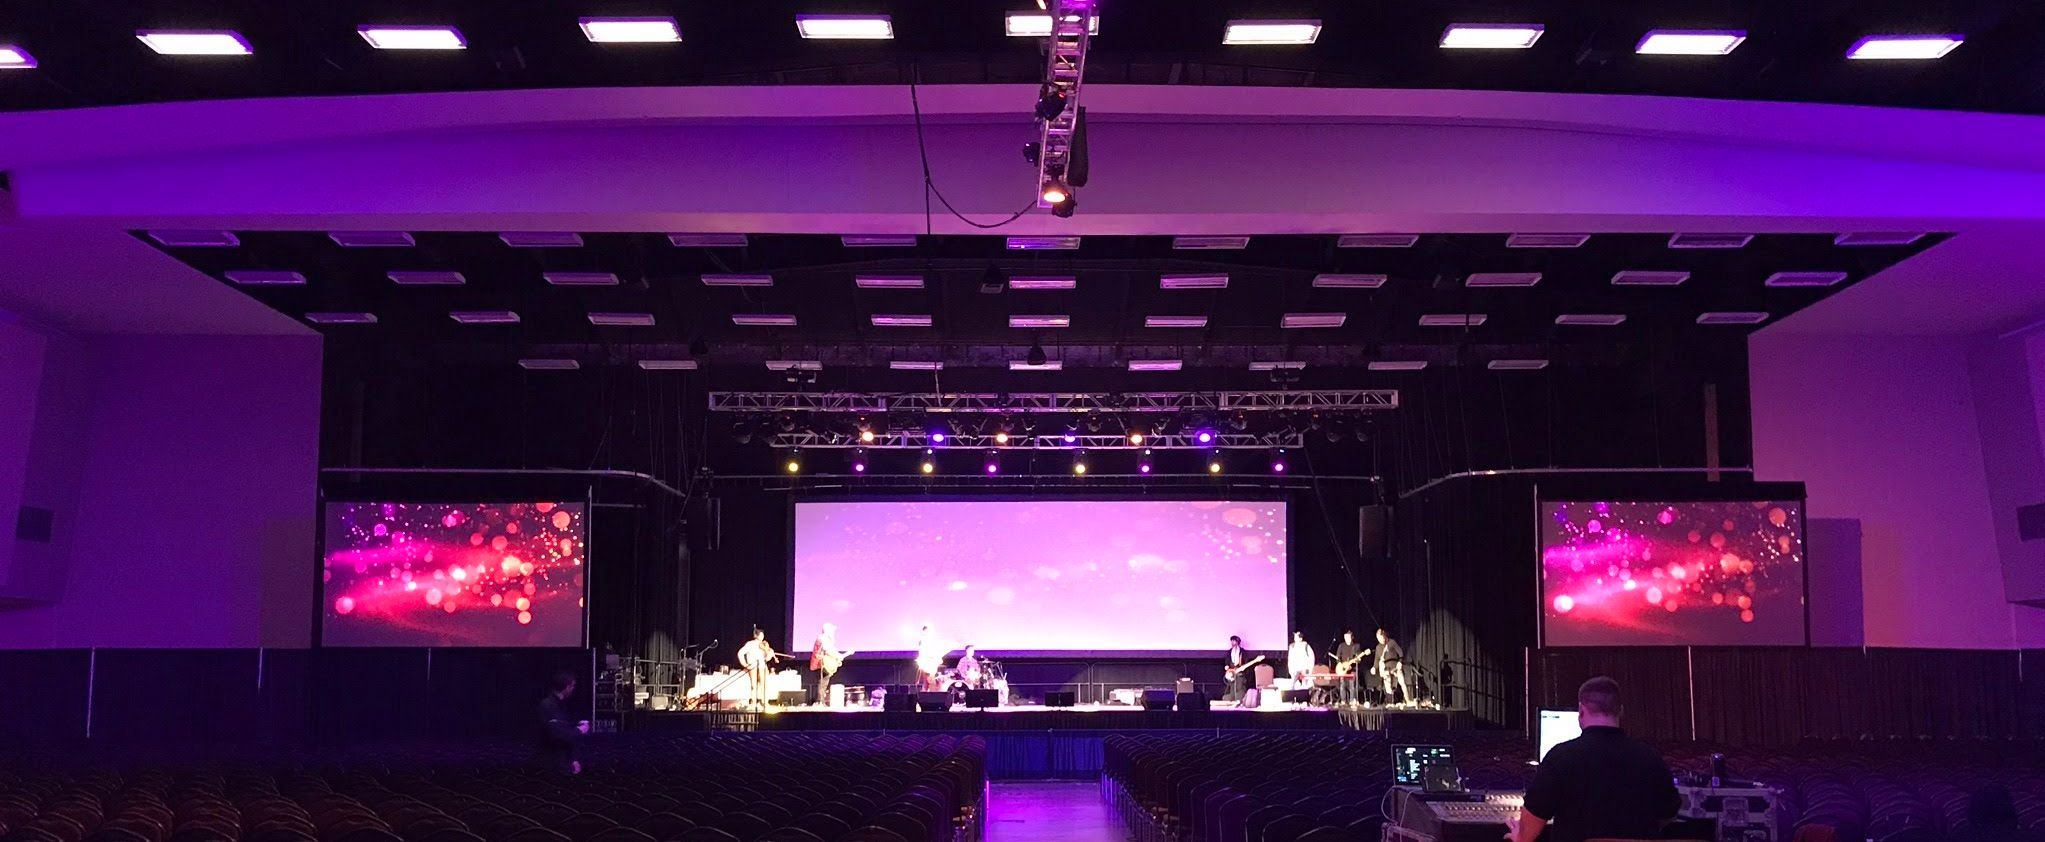 Image of Large Conference with three screen display pink, purple and blue led lighting